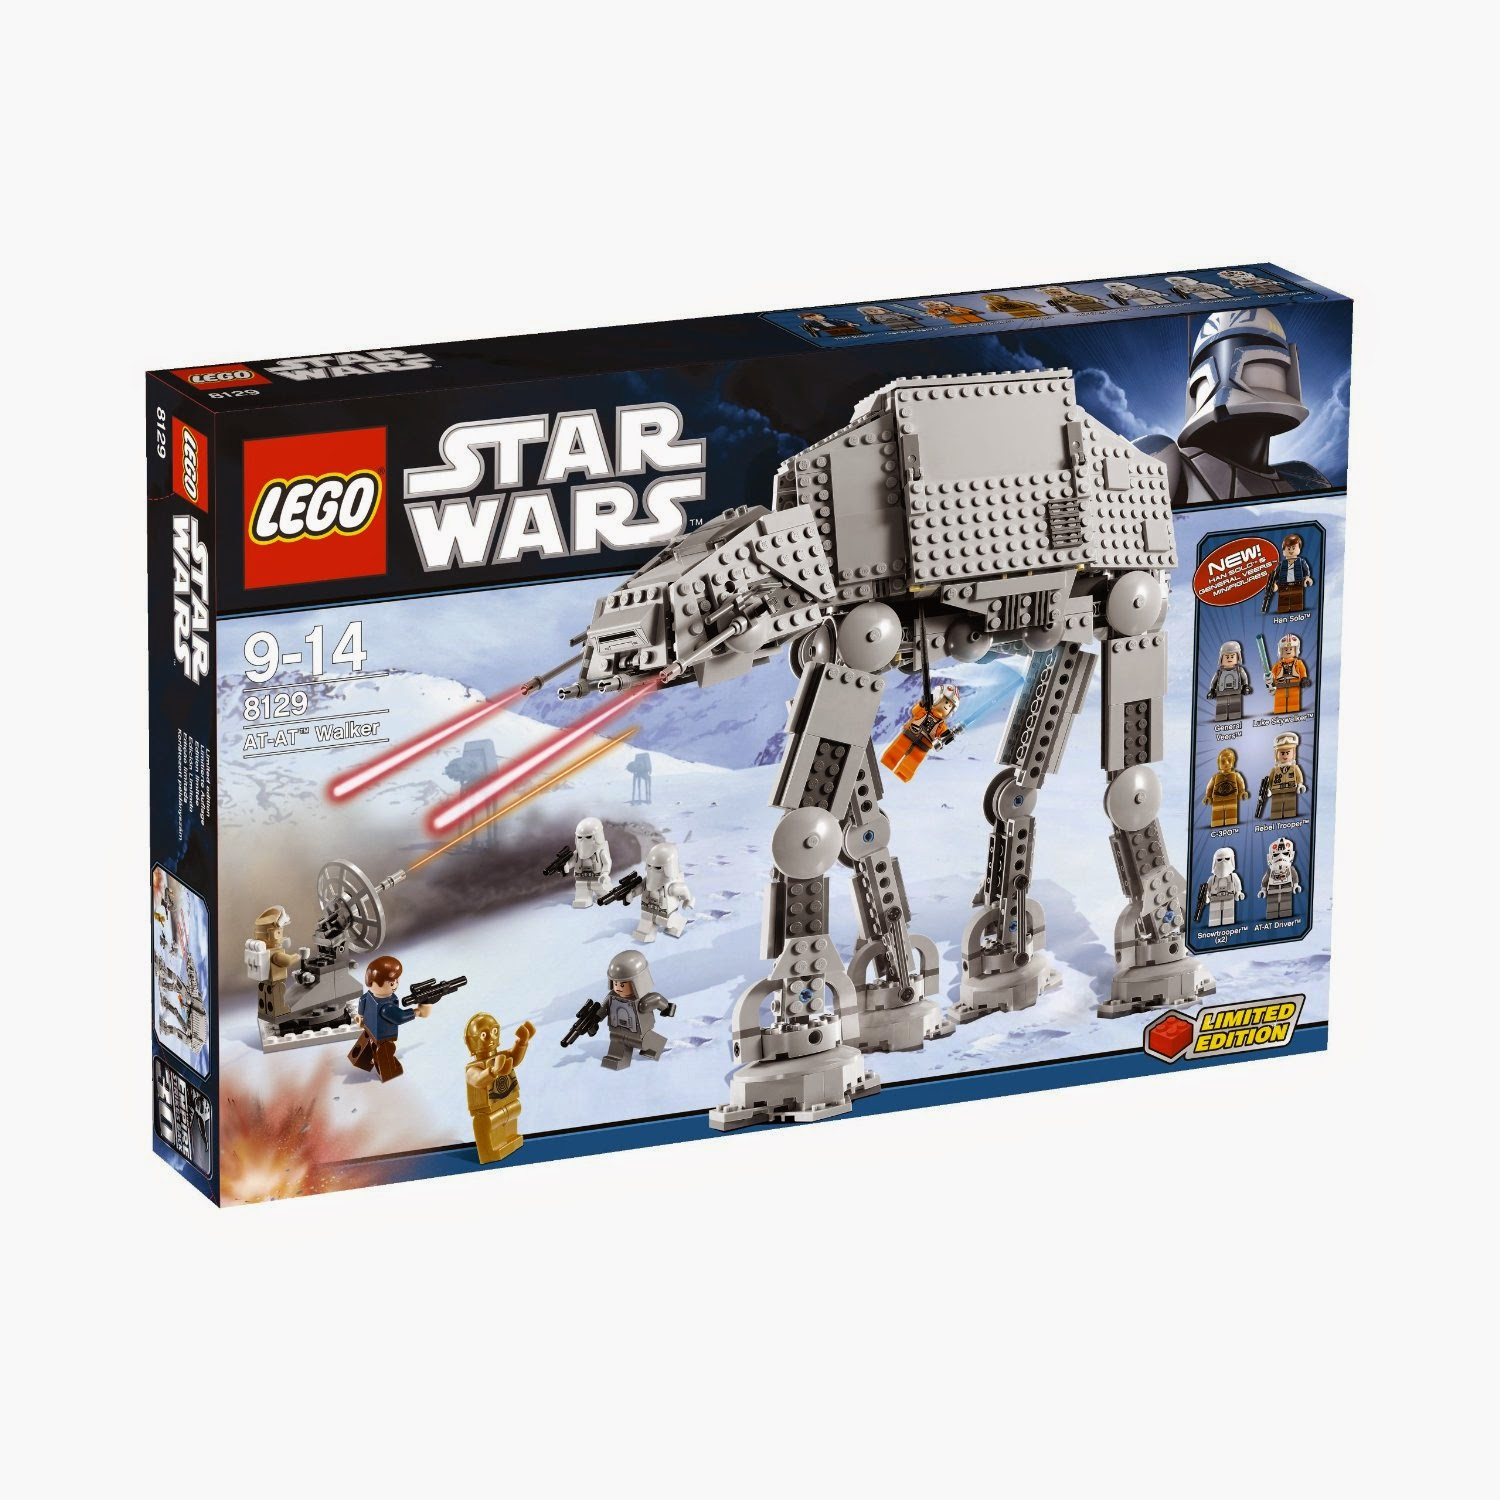 Caja Lego Star Wars AT-AT (8129)